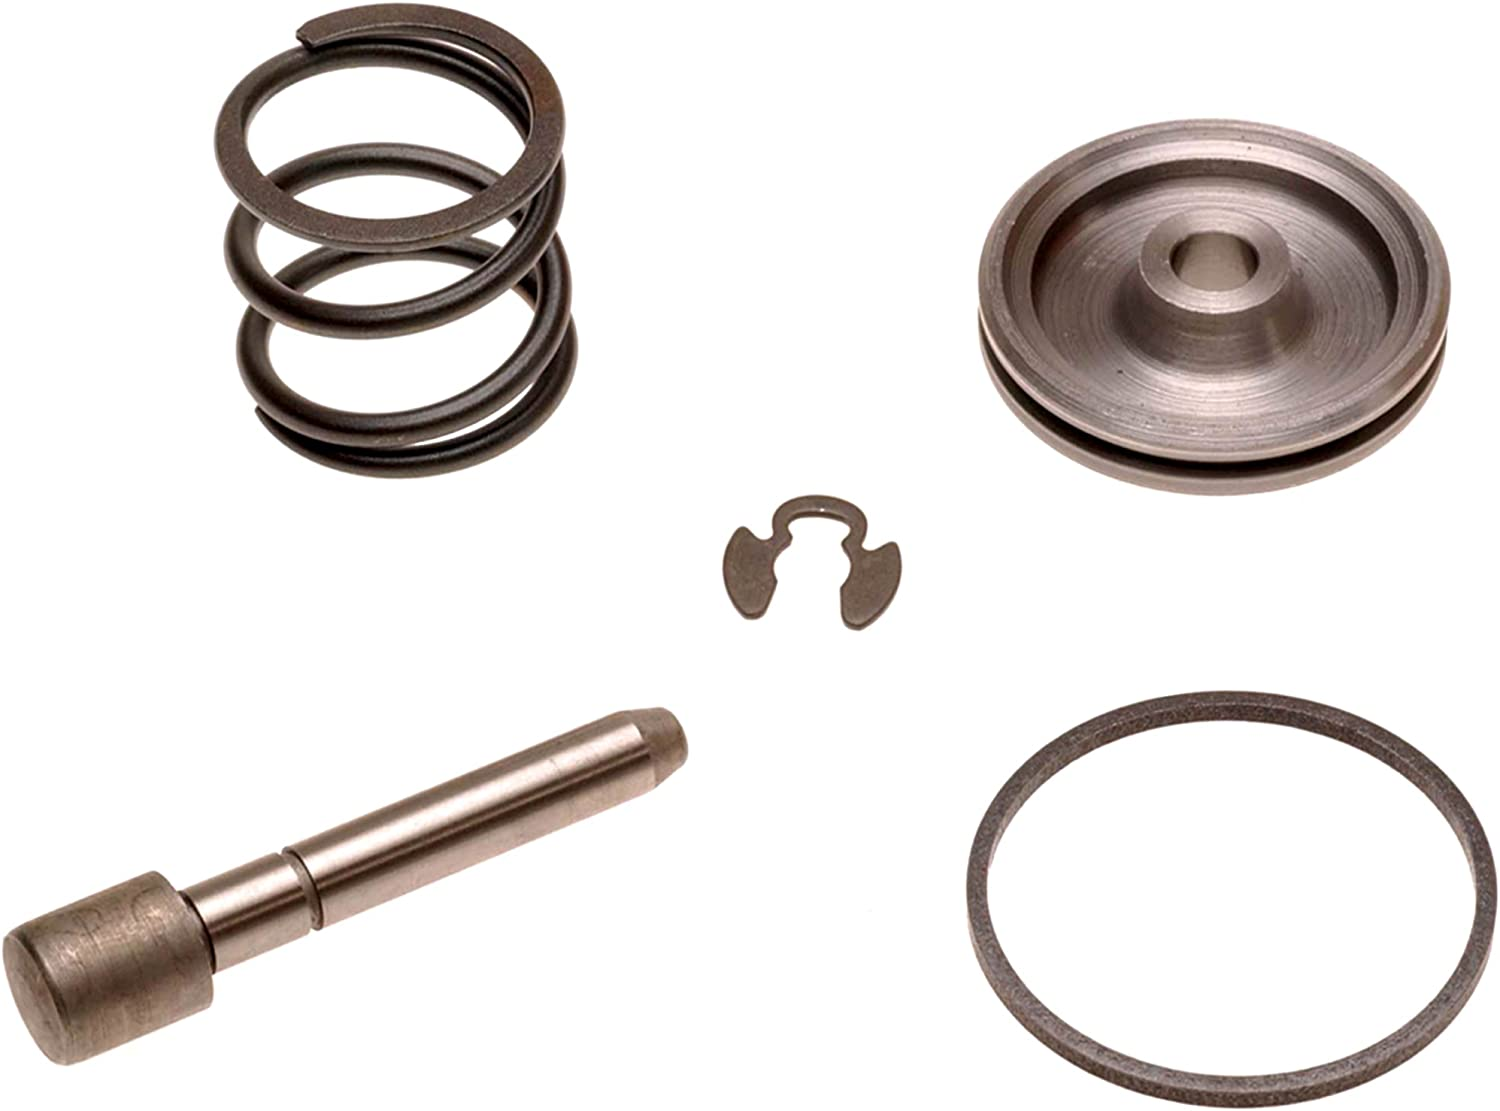 ACDelco 24200418 GM Original Equipment Automatic Transmission Manual 2-1 Servo Piston with Spring and Seal